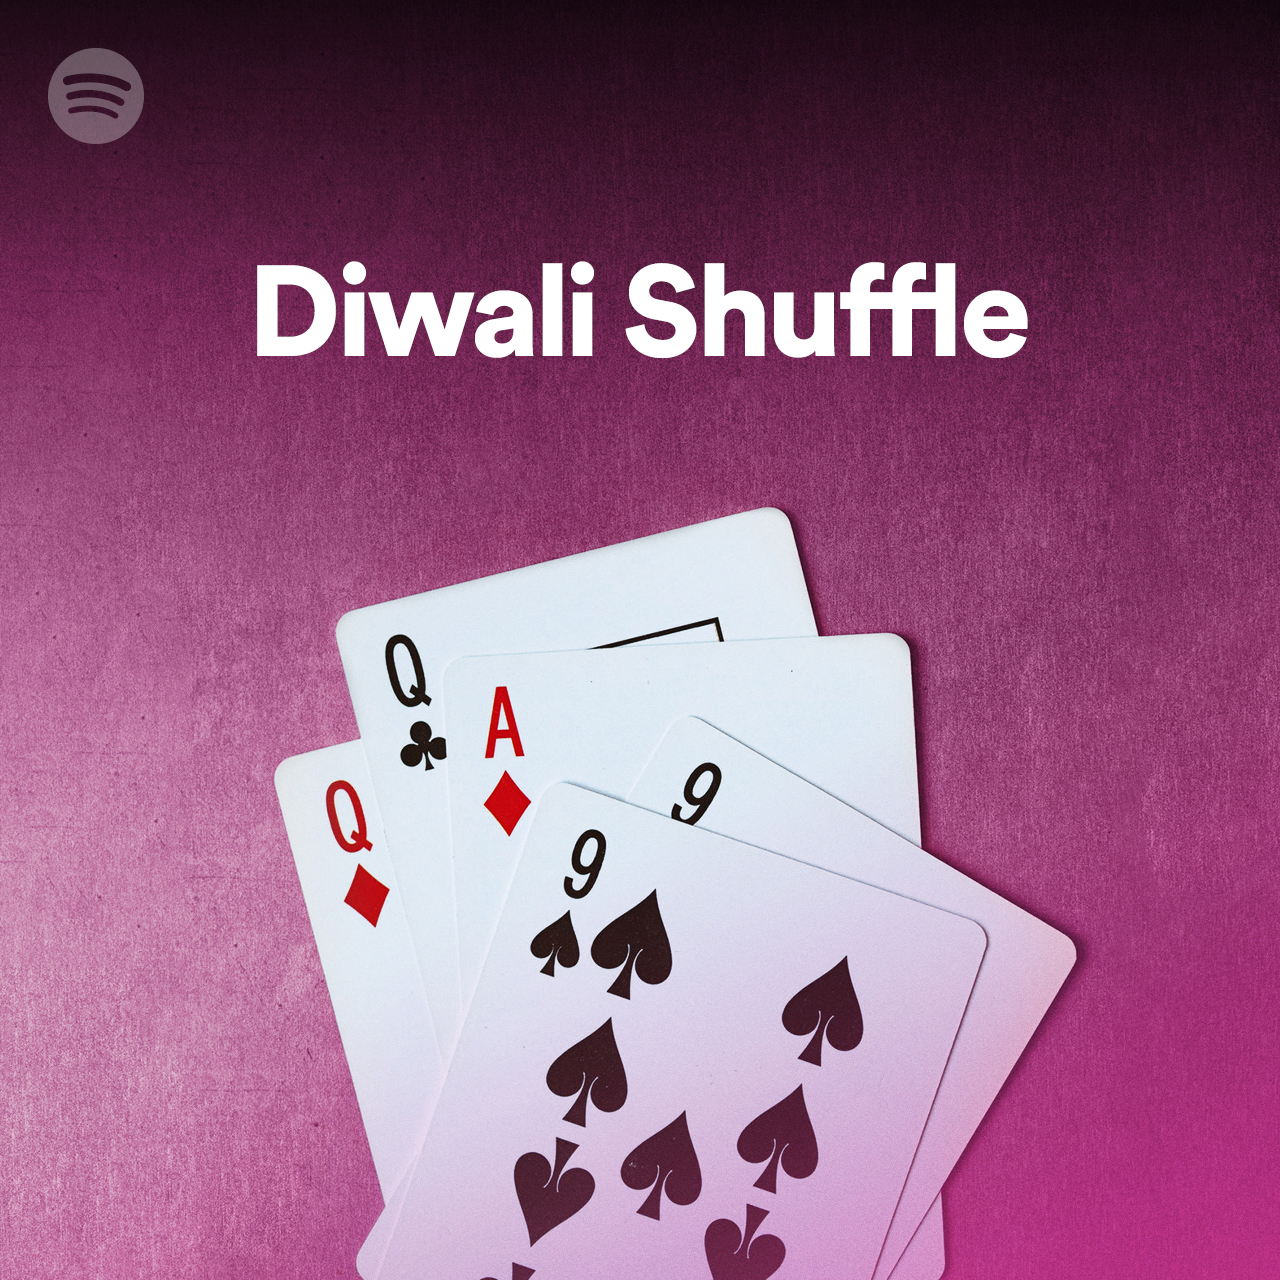 Spotify gets you shuffling for its first Diwali in India via Leo Burnett's campaign